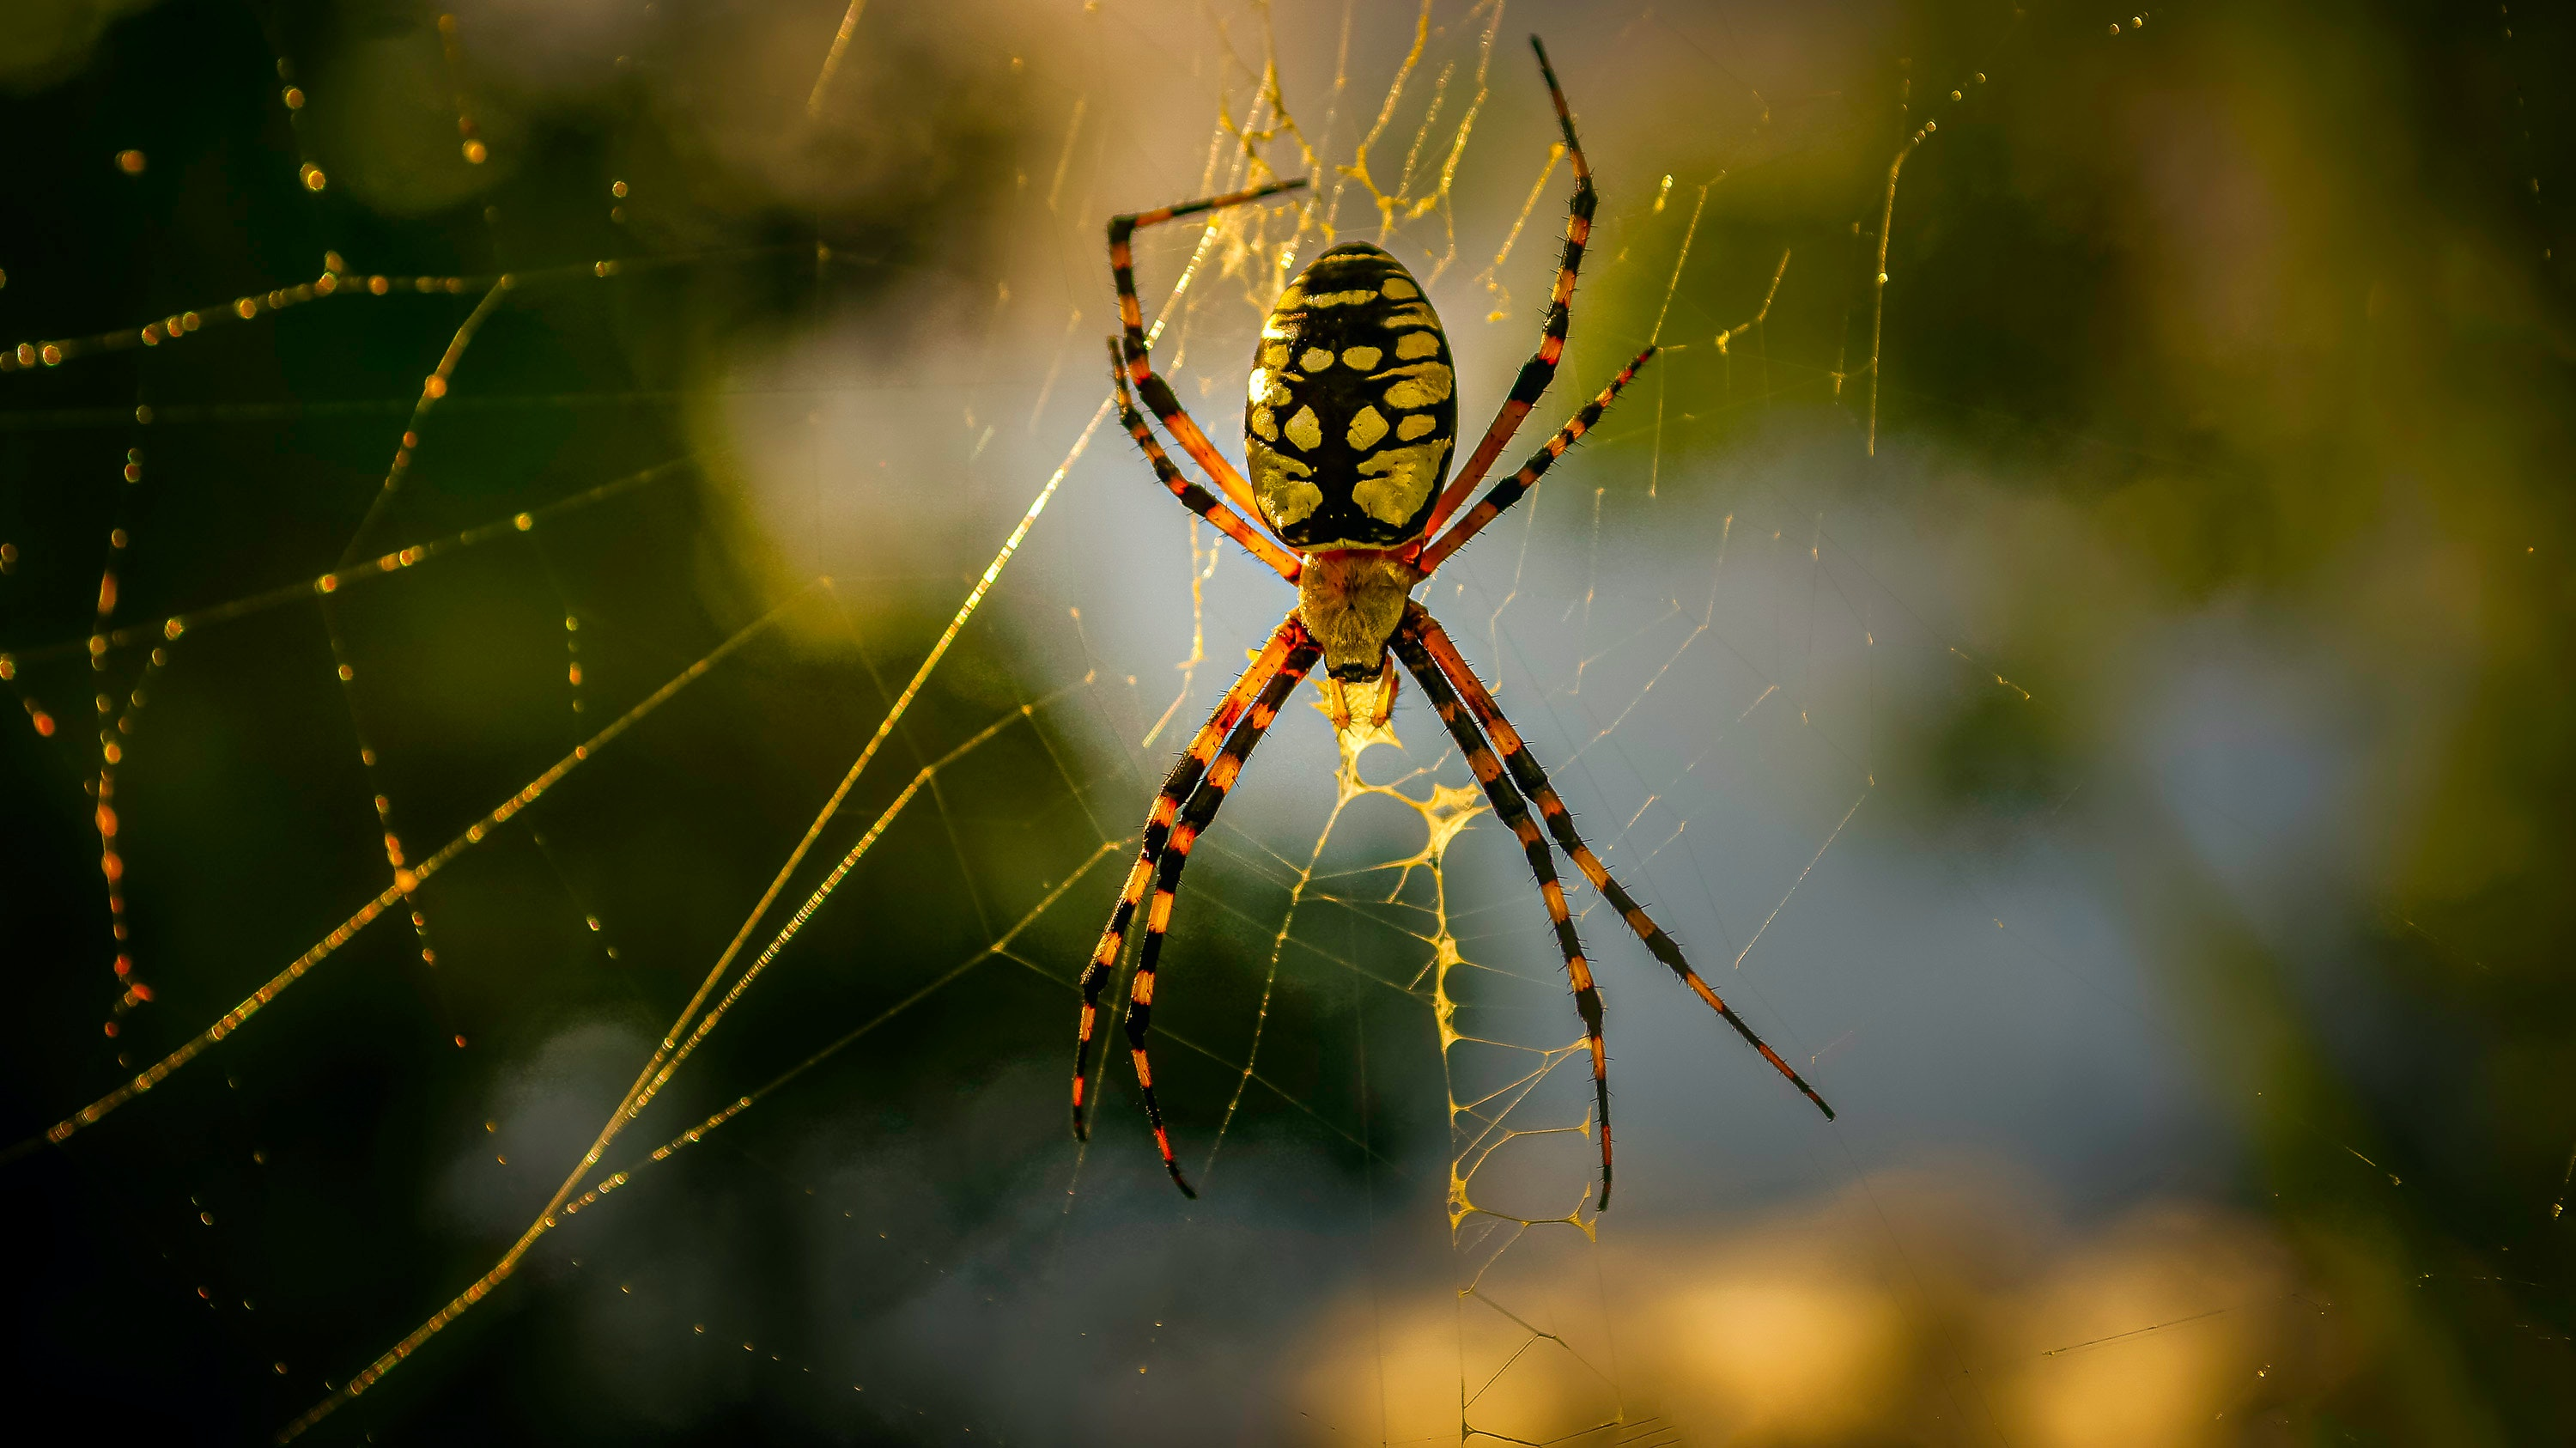 A spider waiting to trap prey in its web